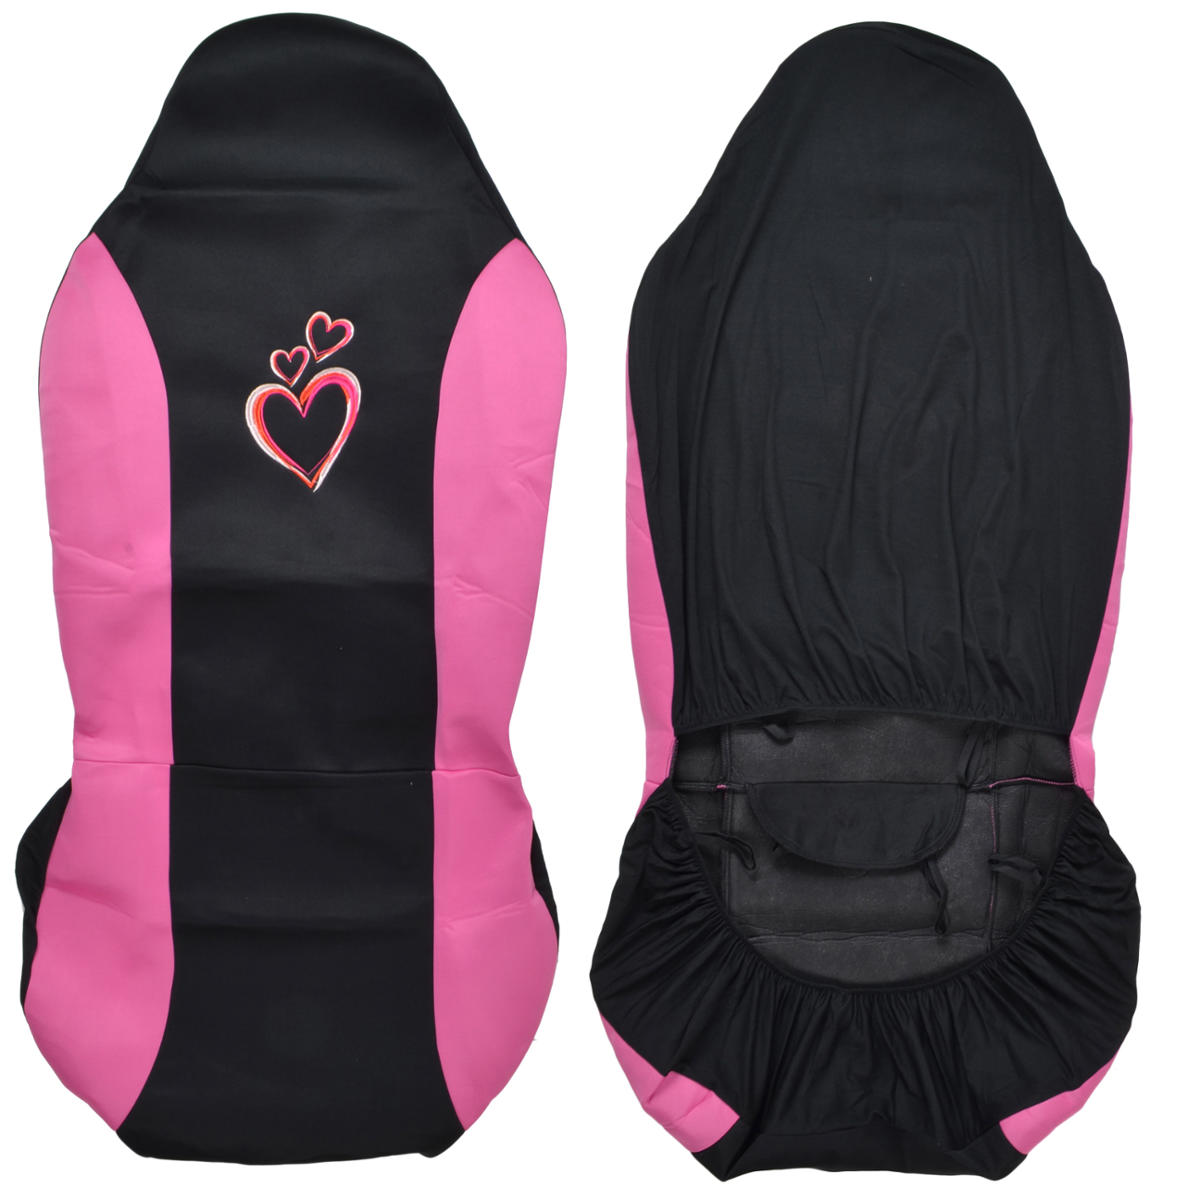 Highback Bucket Car Seat Covers